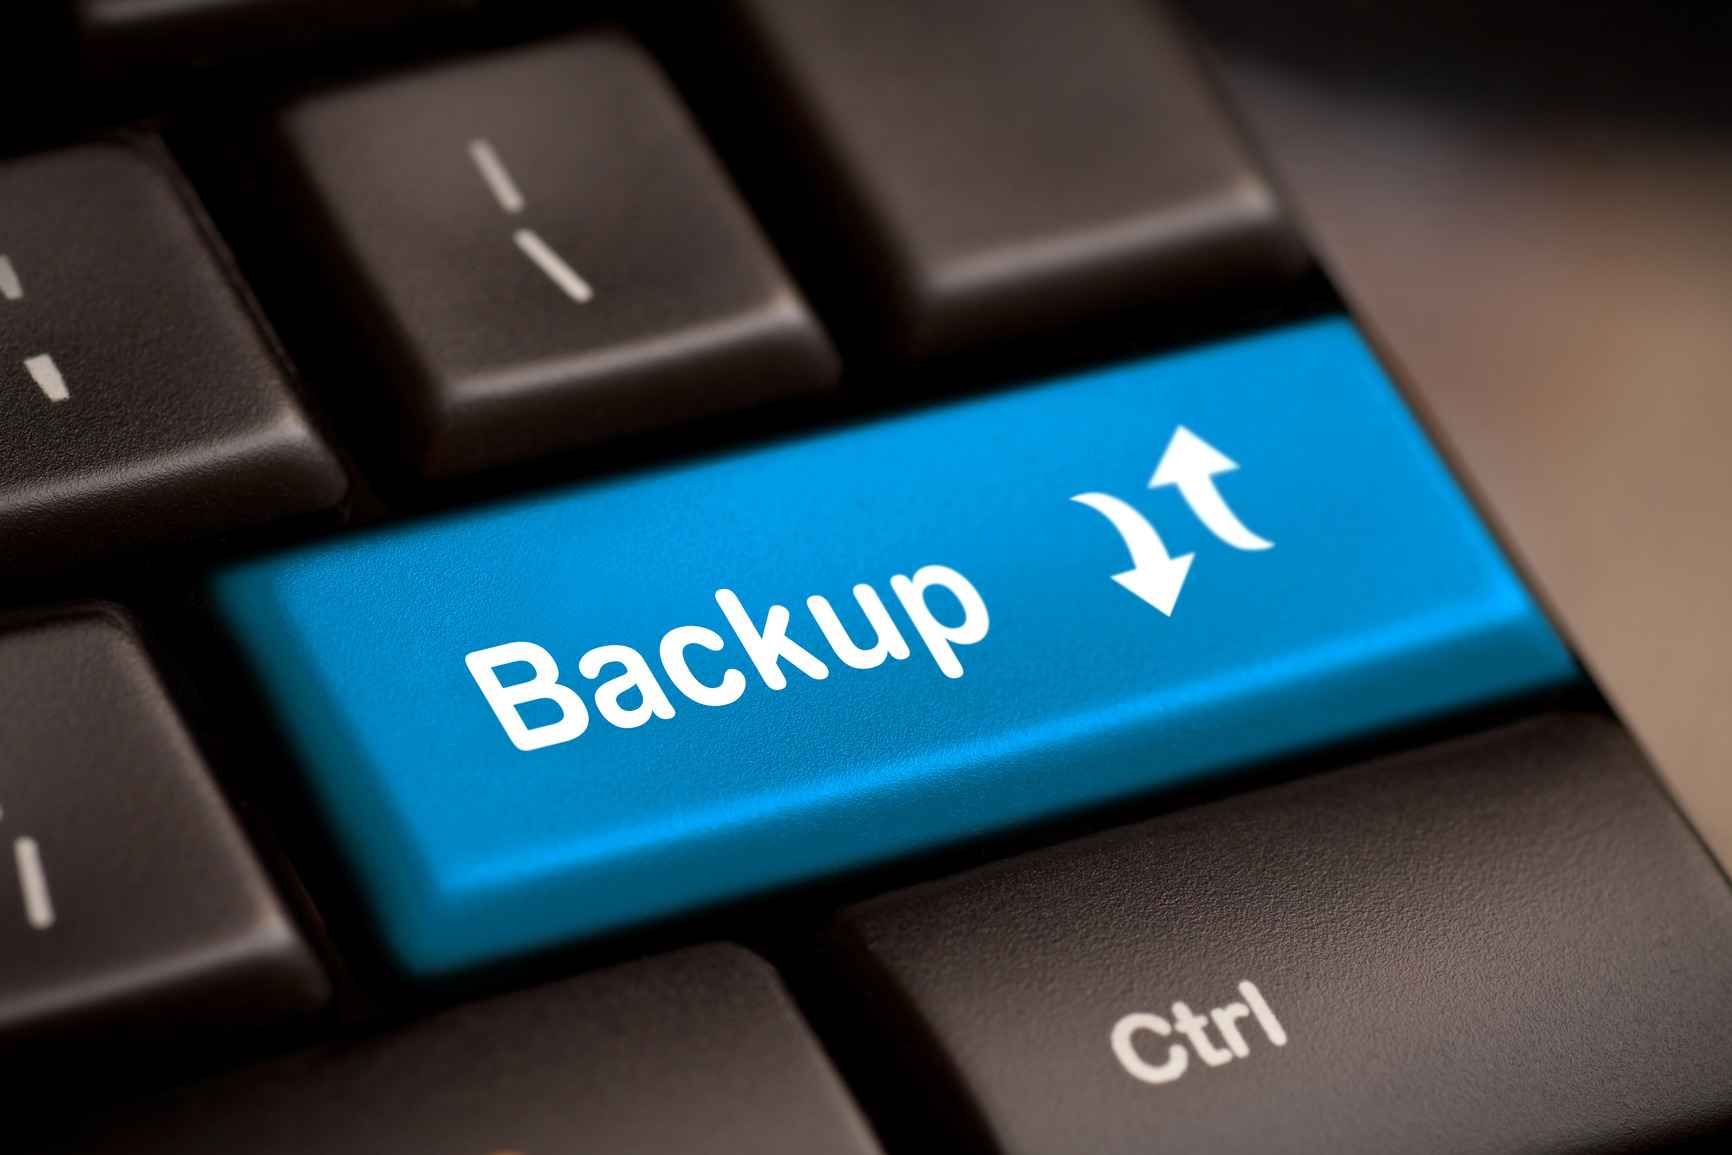 Top 4 Apps to take full backup of the iOS Device